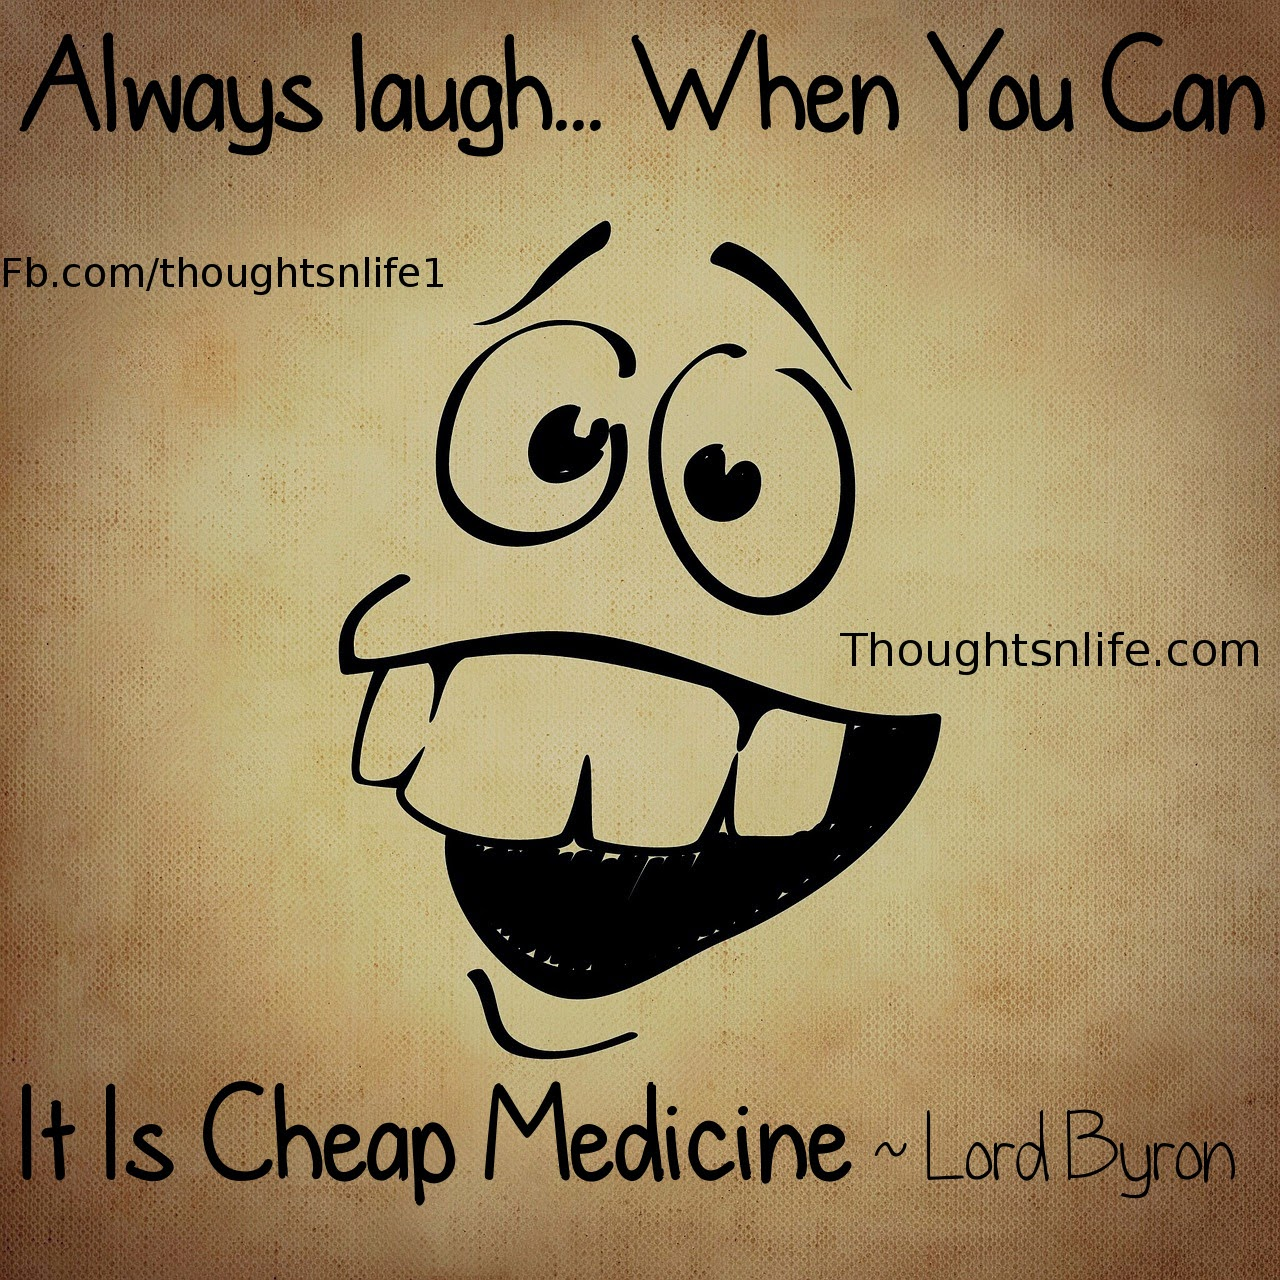 Thoughtsnlife, Always laugh, laugh, laugh quotes, funny face,laughter images